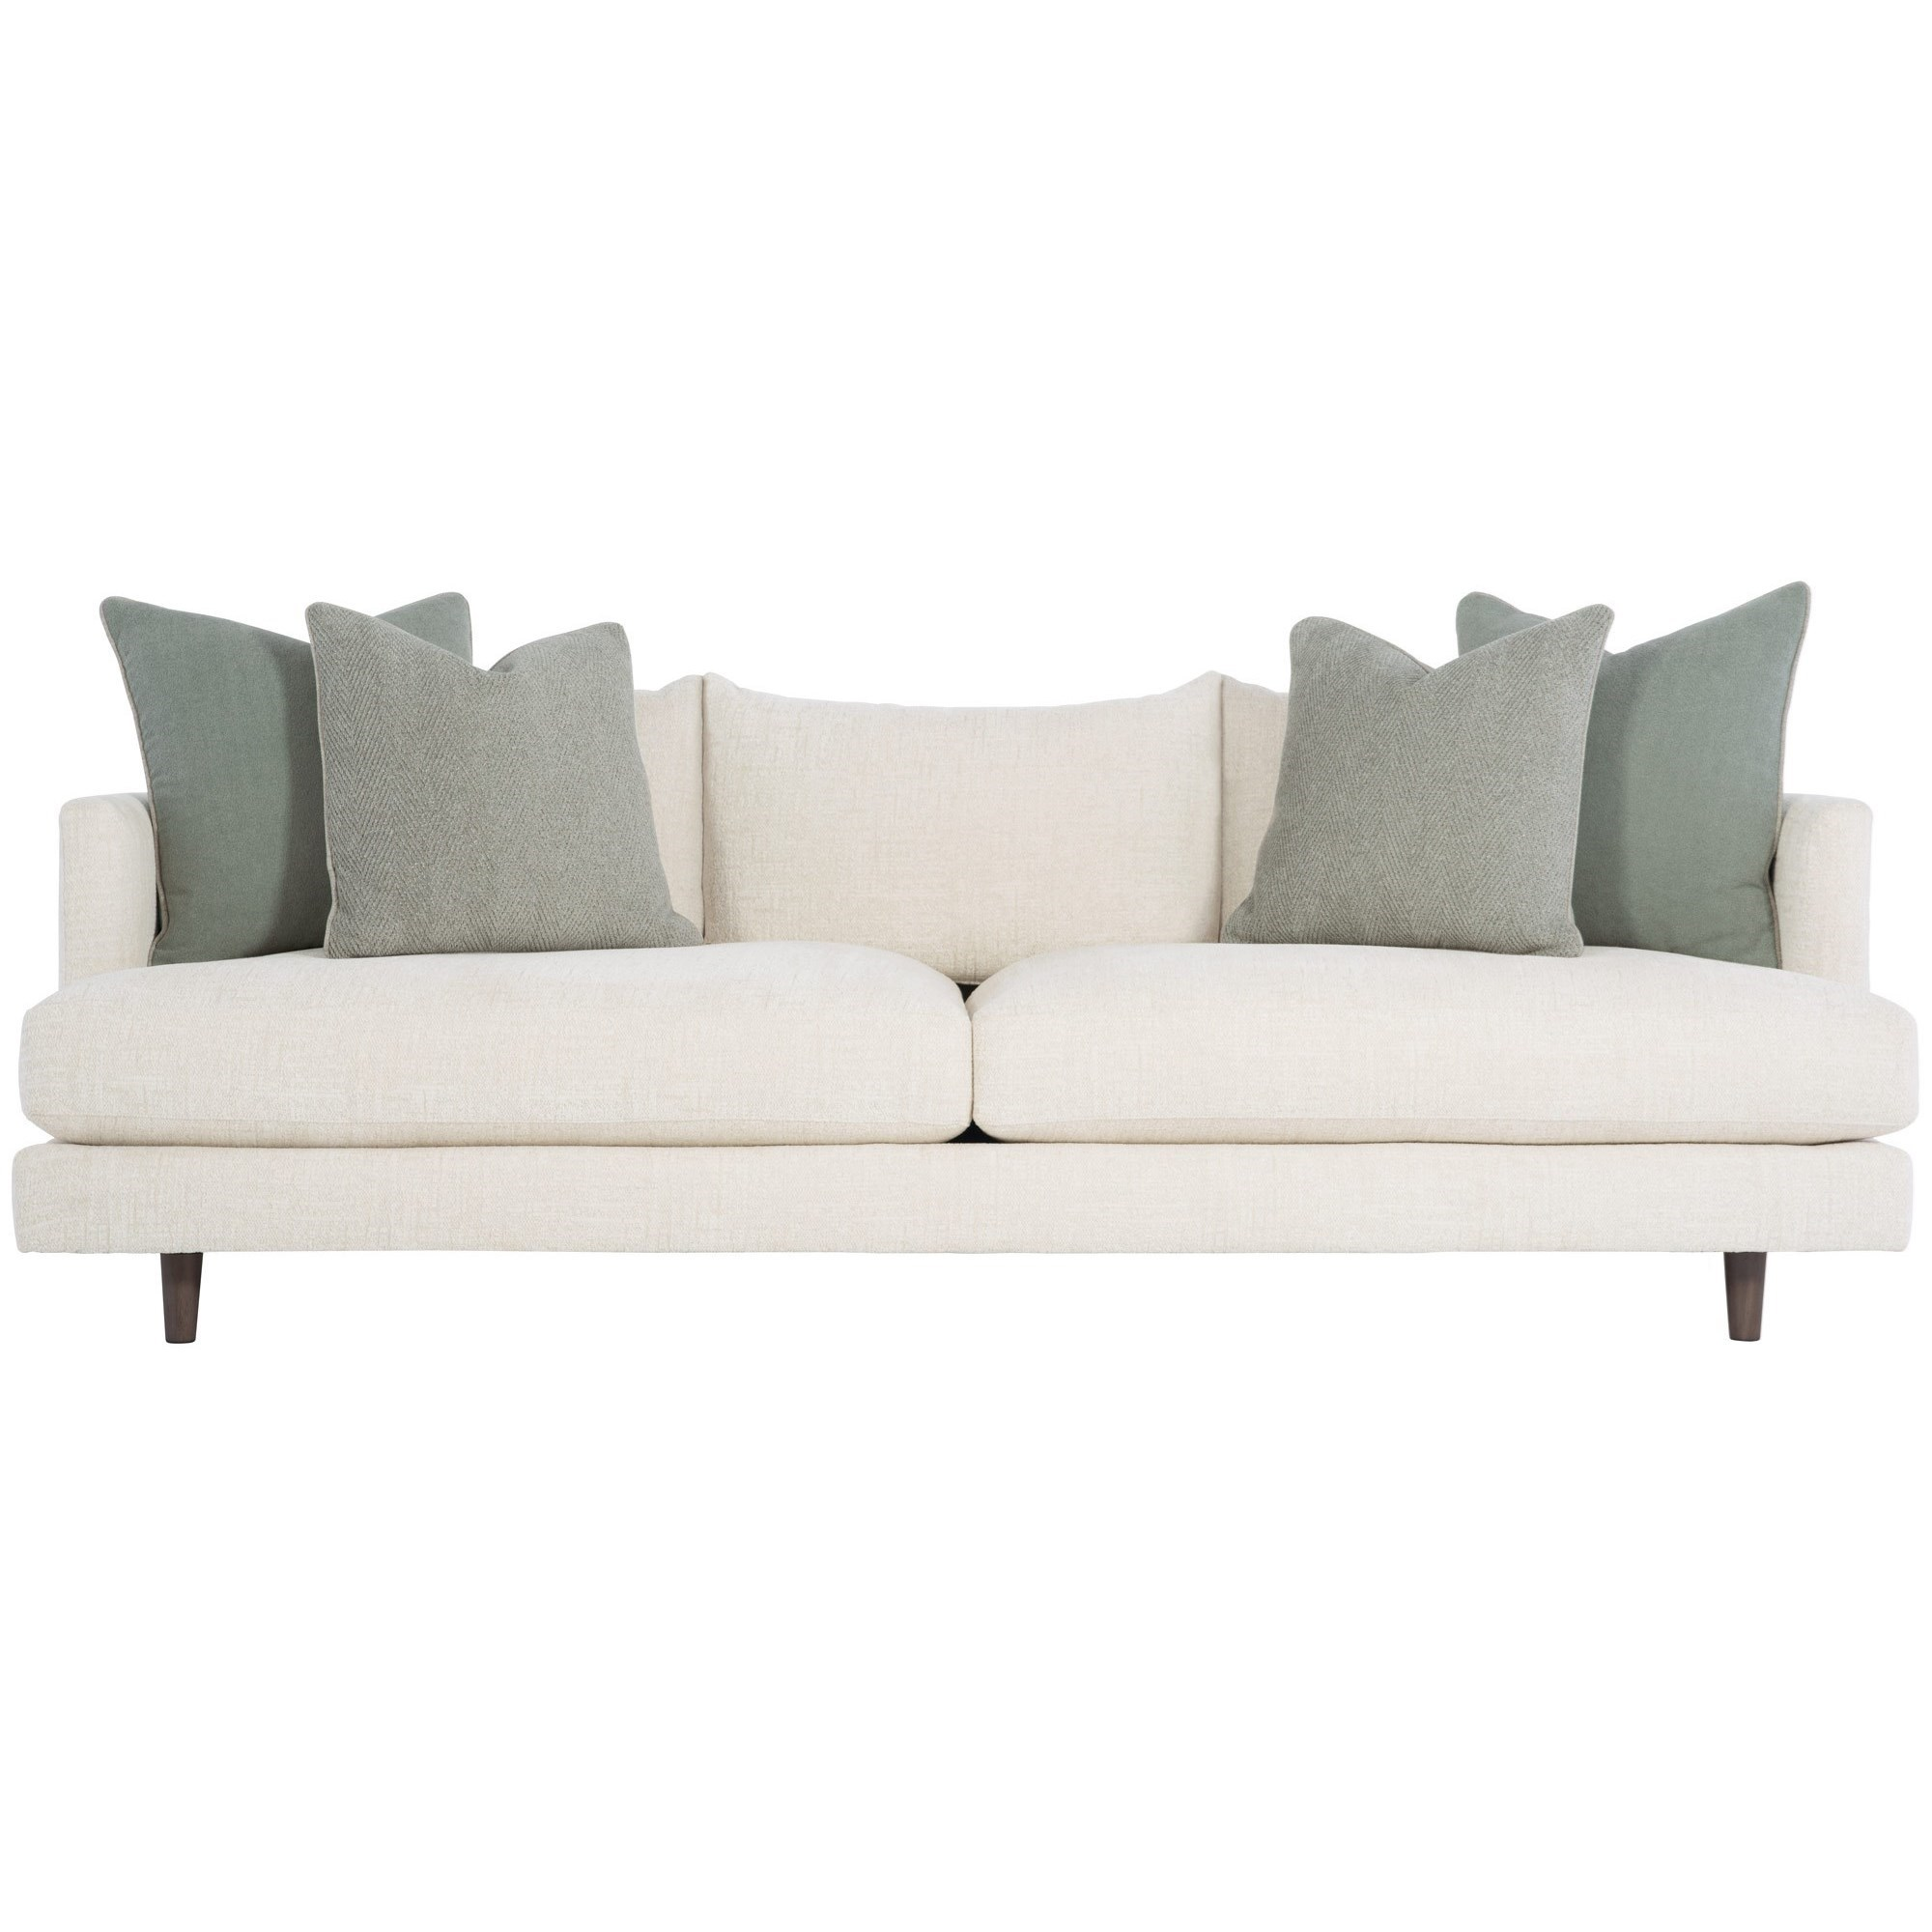 Bernhardt Colette Mid Century Modern Sofa With Down Seat Cushions And Throw Pillows Wayside Furniture Sofas